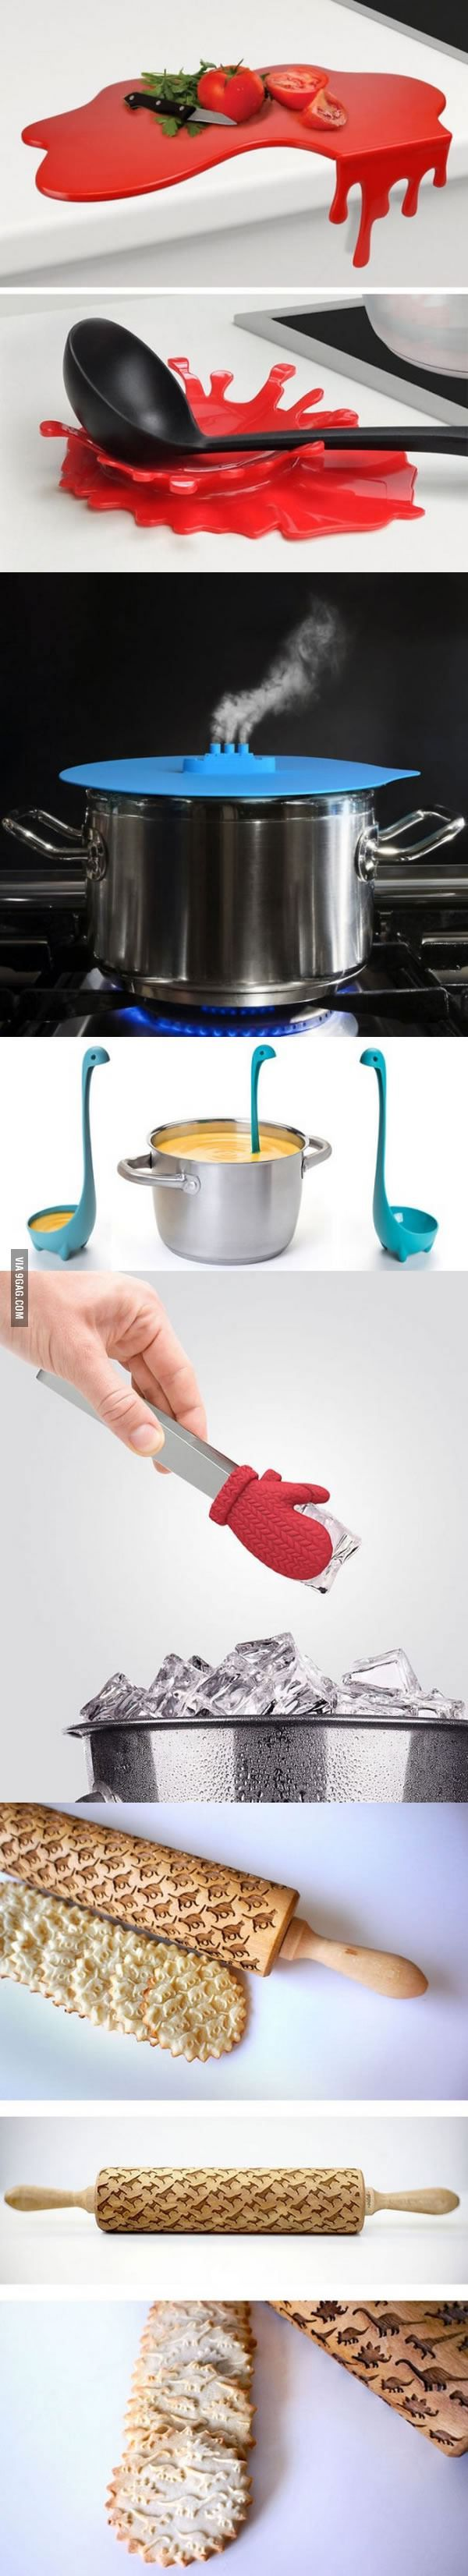 I love novelty Kitchen gadgets - not saying all these just a few things